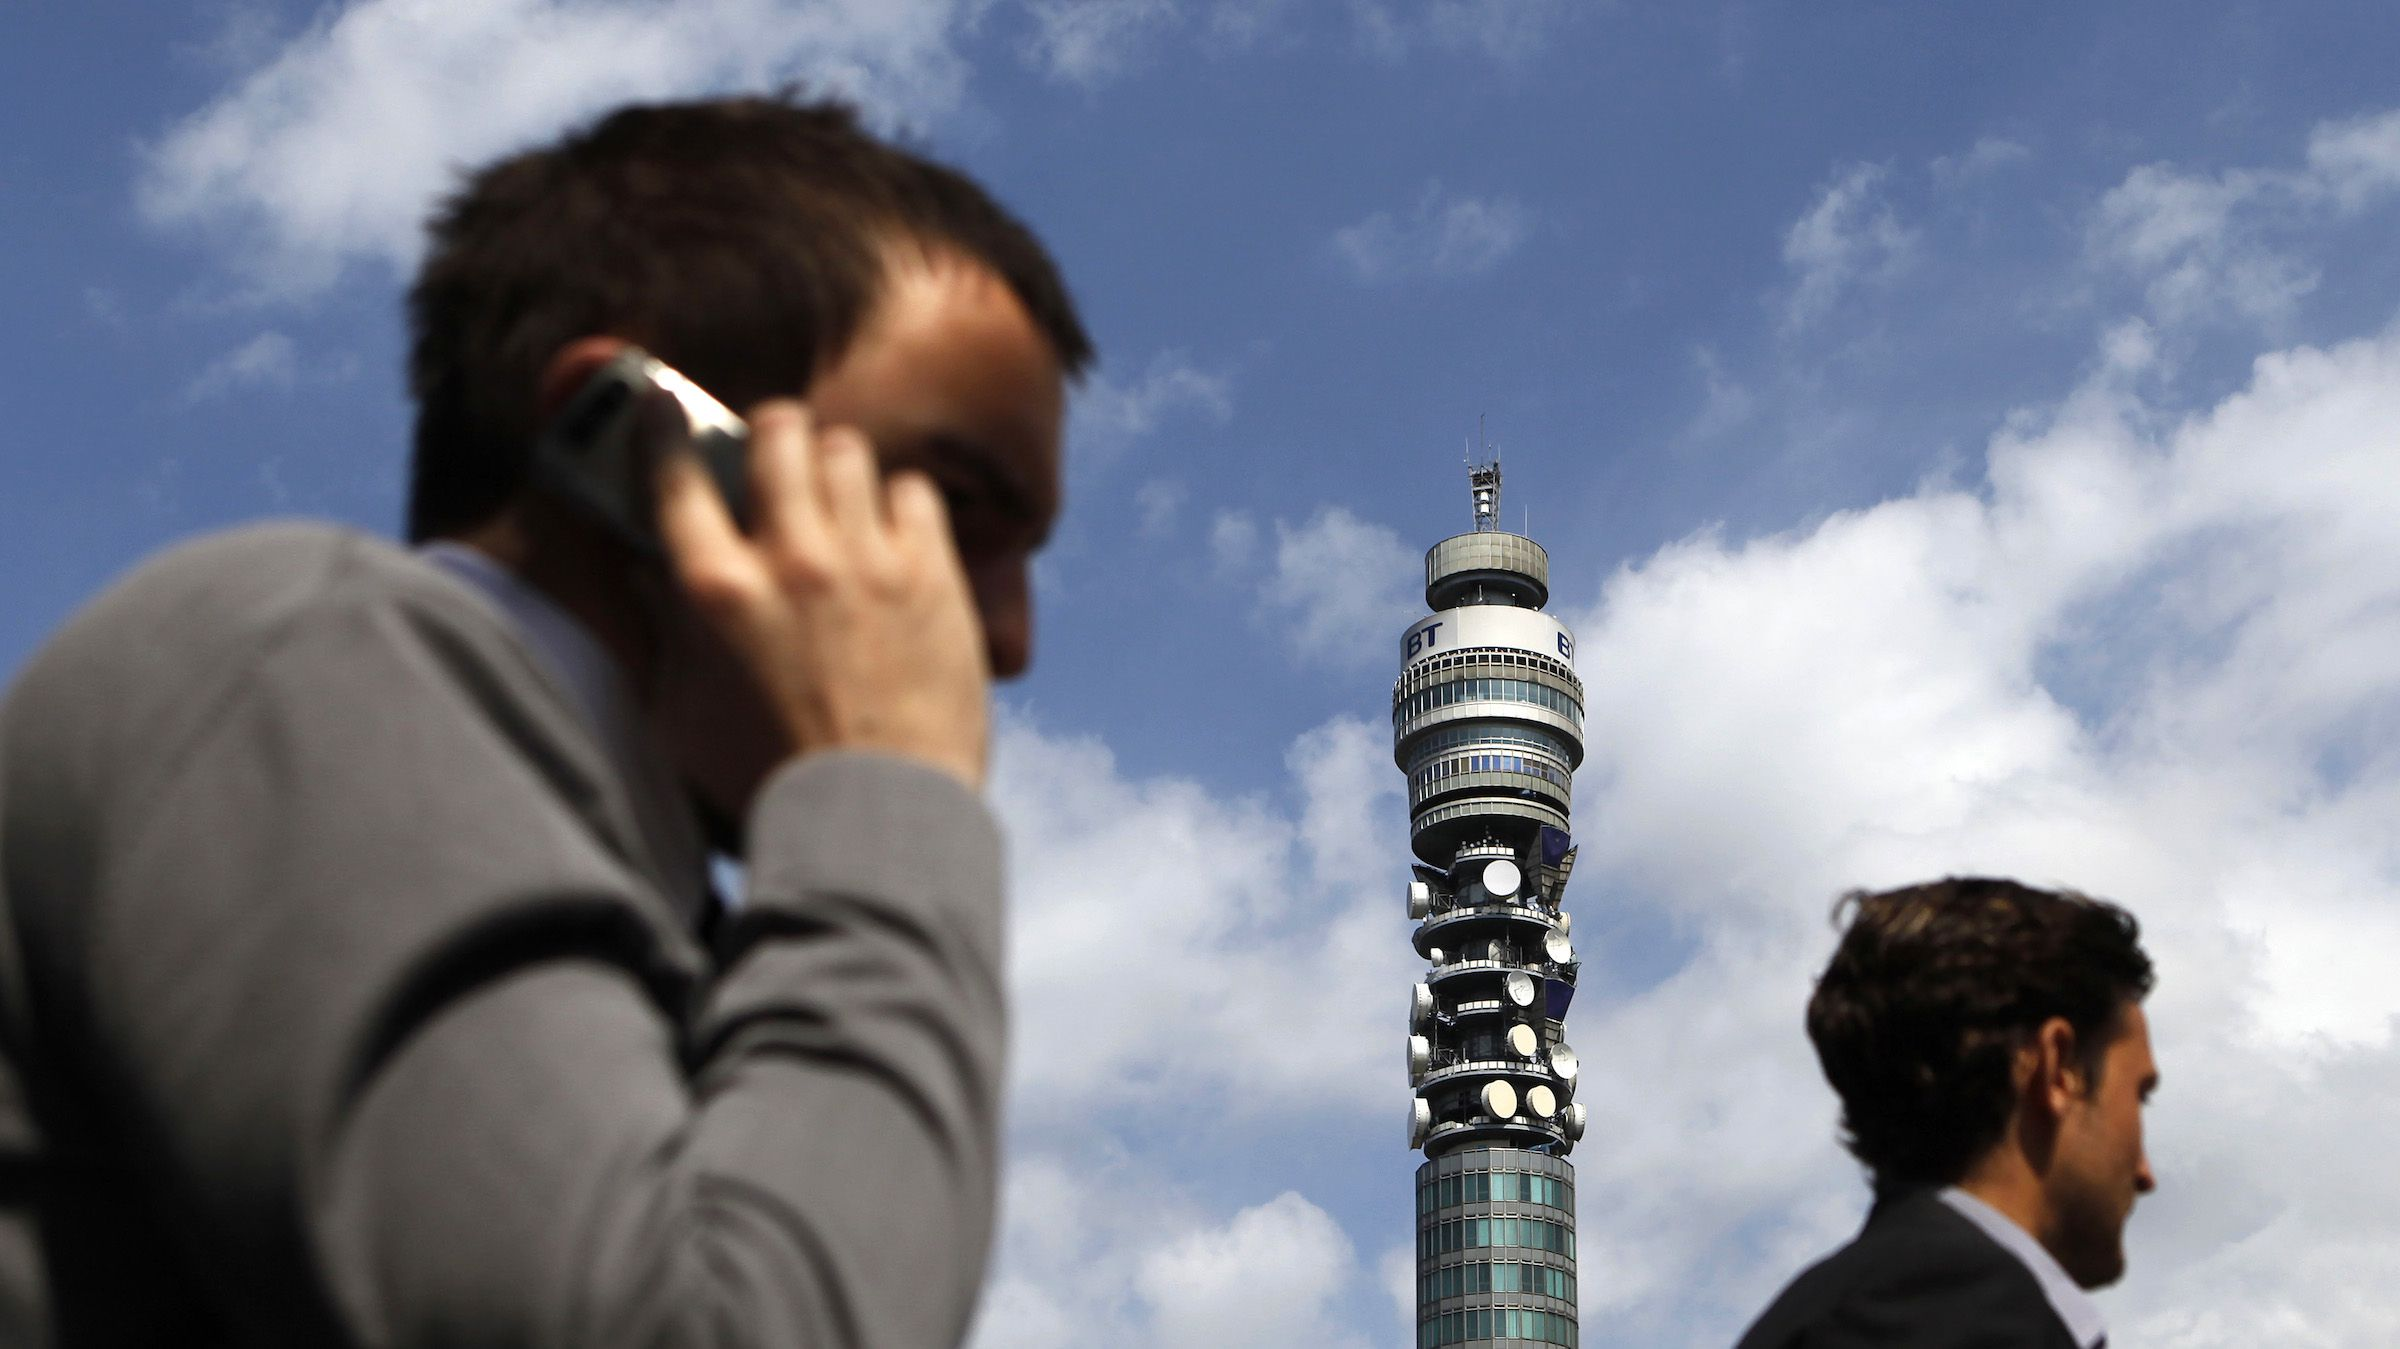 A pedestrian speaks on a mobile phone